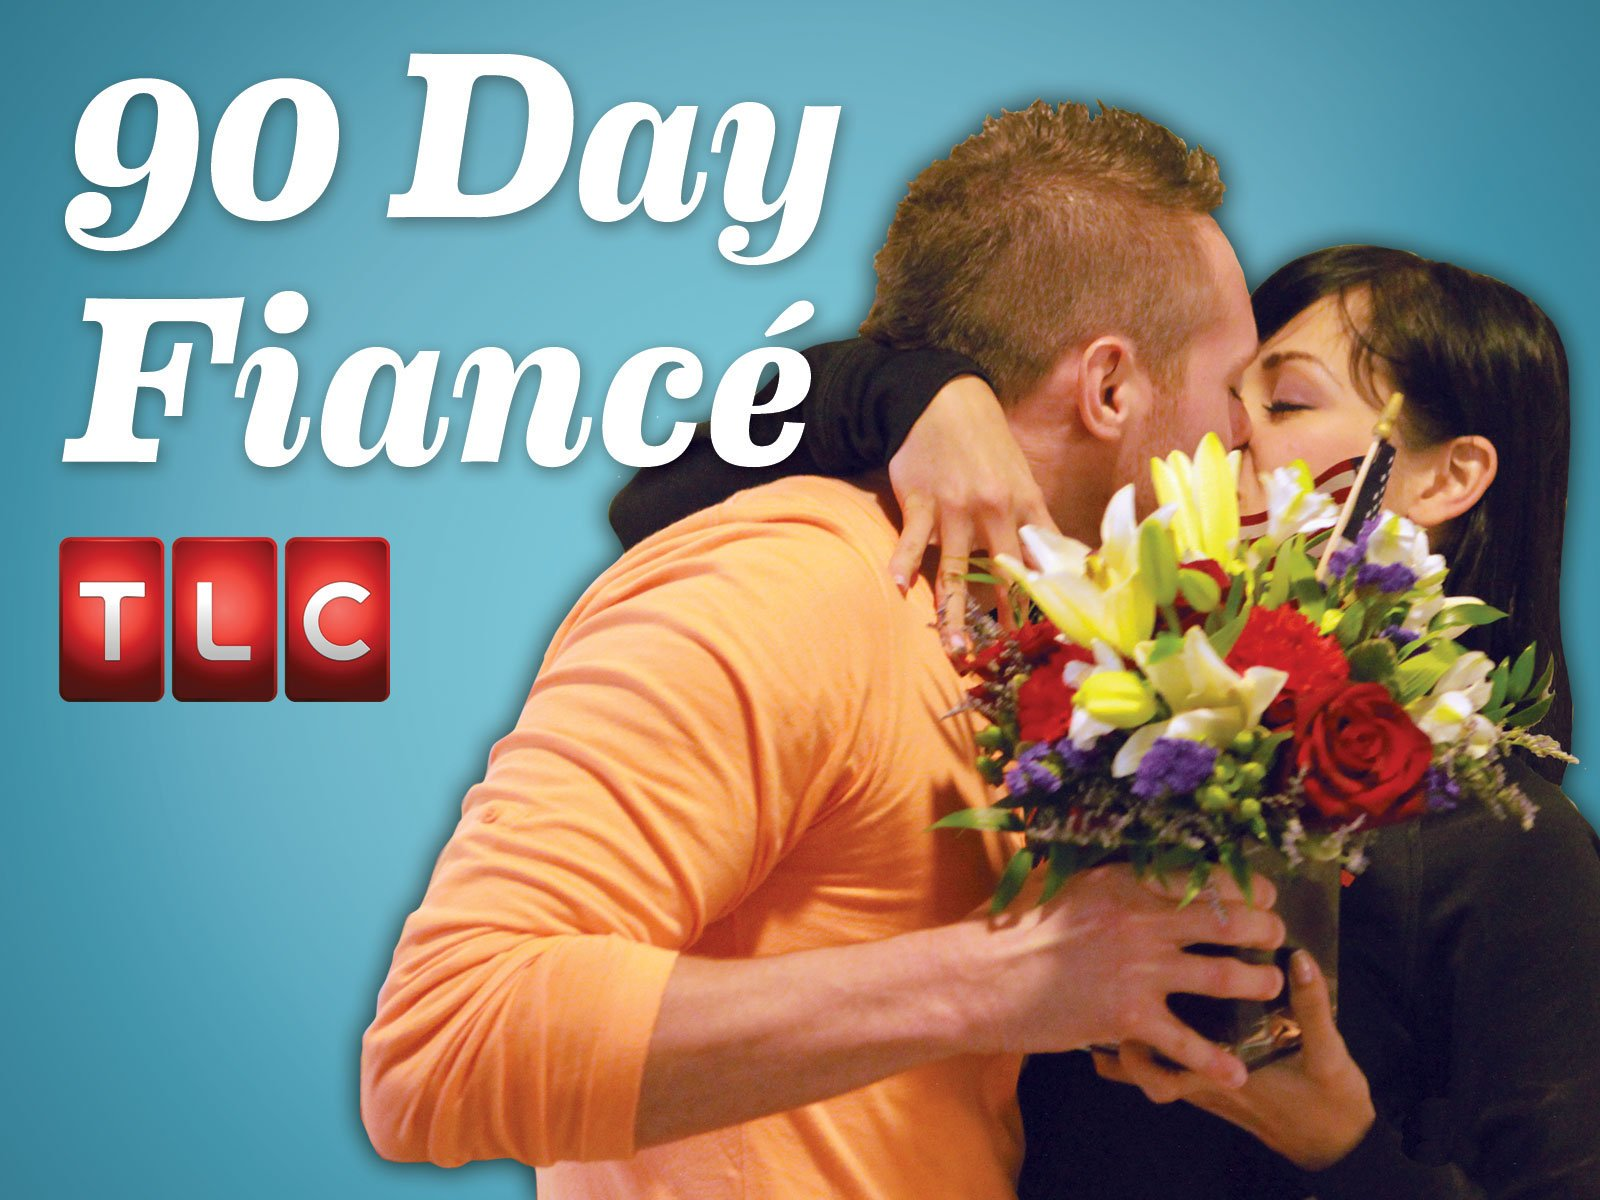 90 day fiancé - too little too late